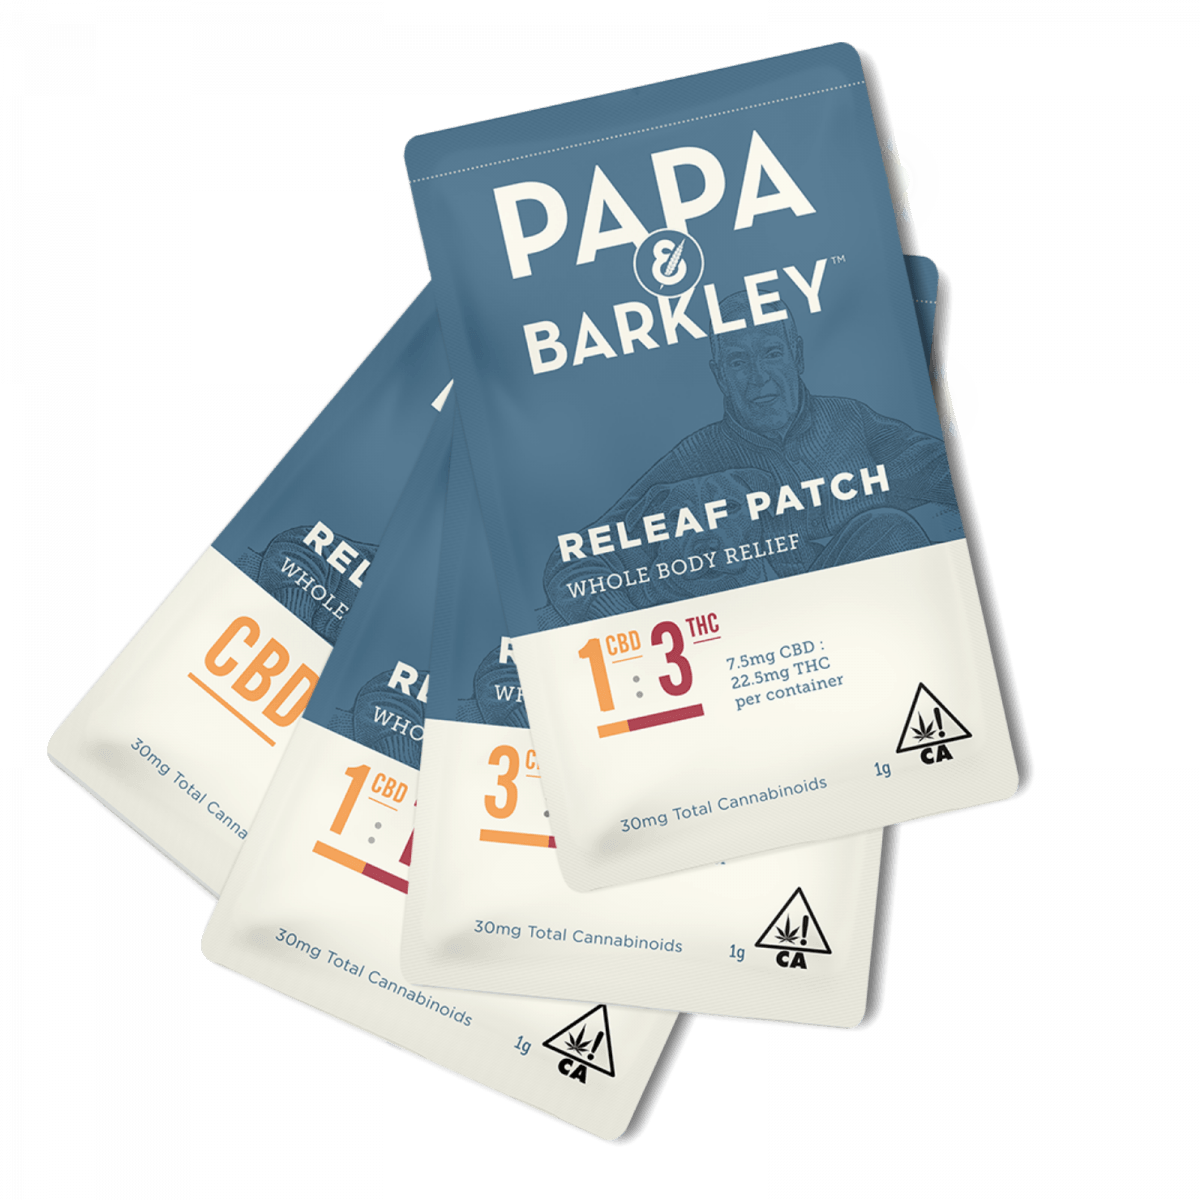 Papa & Barkley Releaf Patches